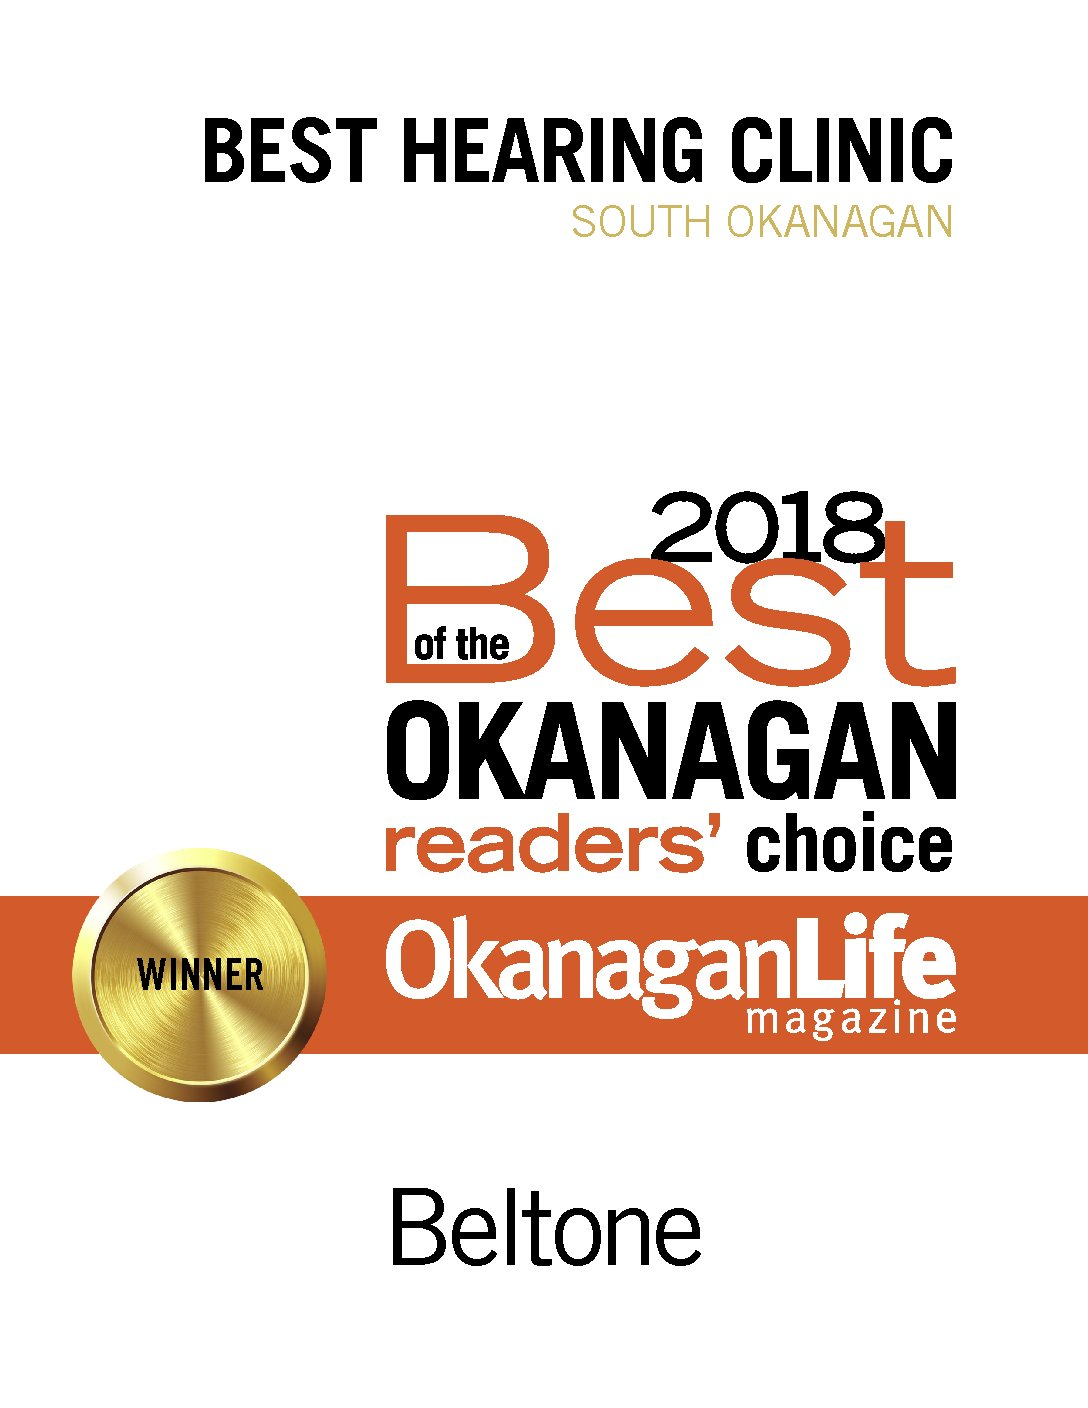 Beltone Hearing Clinic